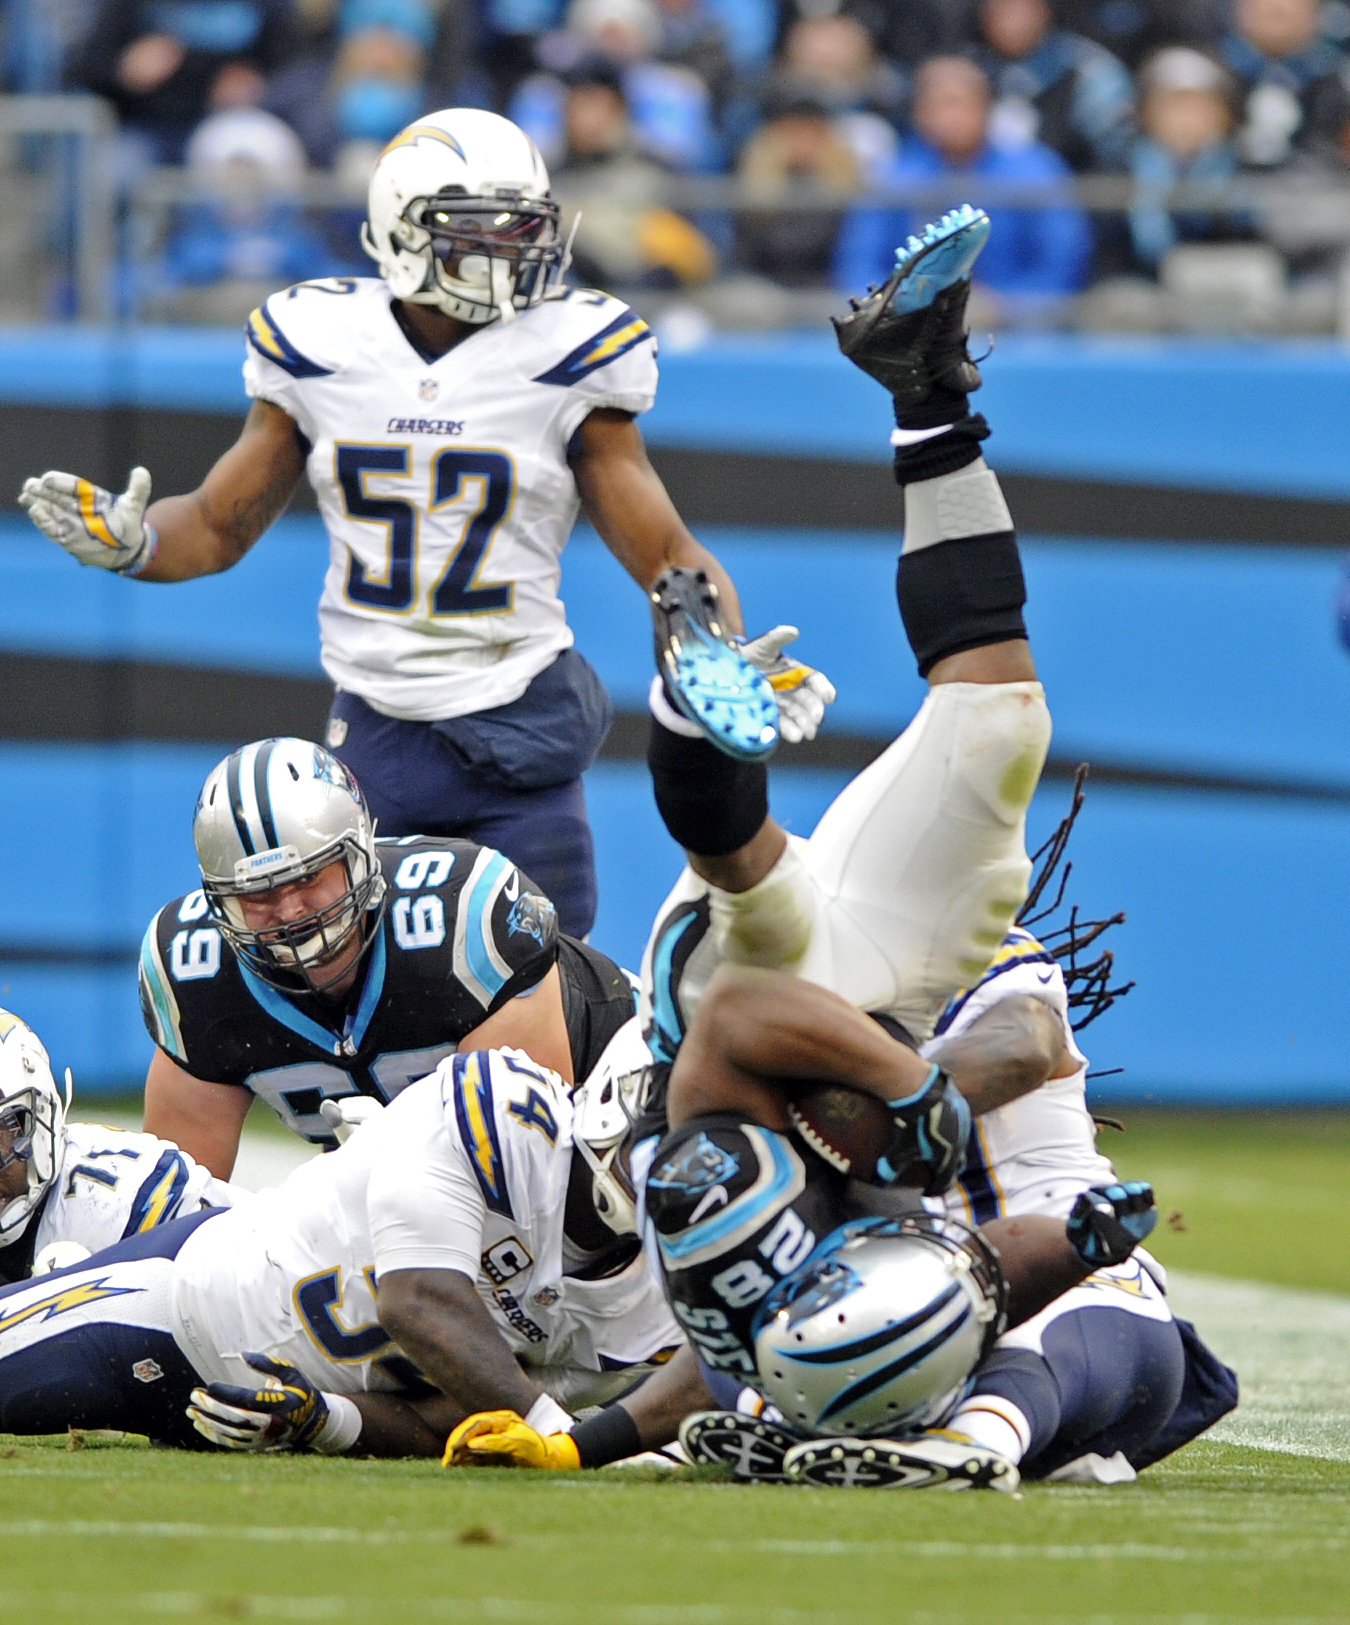 Carolina Panthers' Jonathan Stewart (28) rolls over a San Diego Chargers player in the first half of an NFL football game in Charlotte, N.C., Sunday, Dec. 11, 2016. (AP Photo/Mike McCarn)